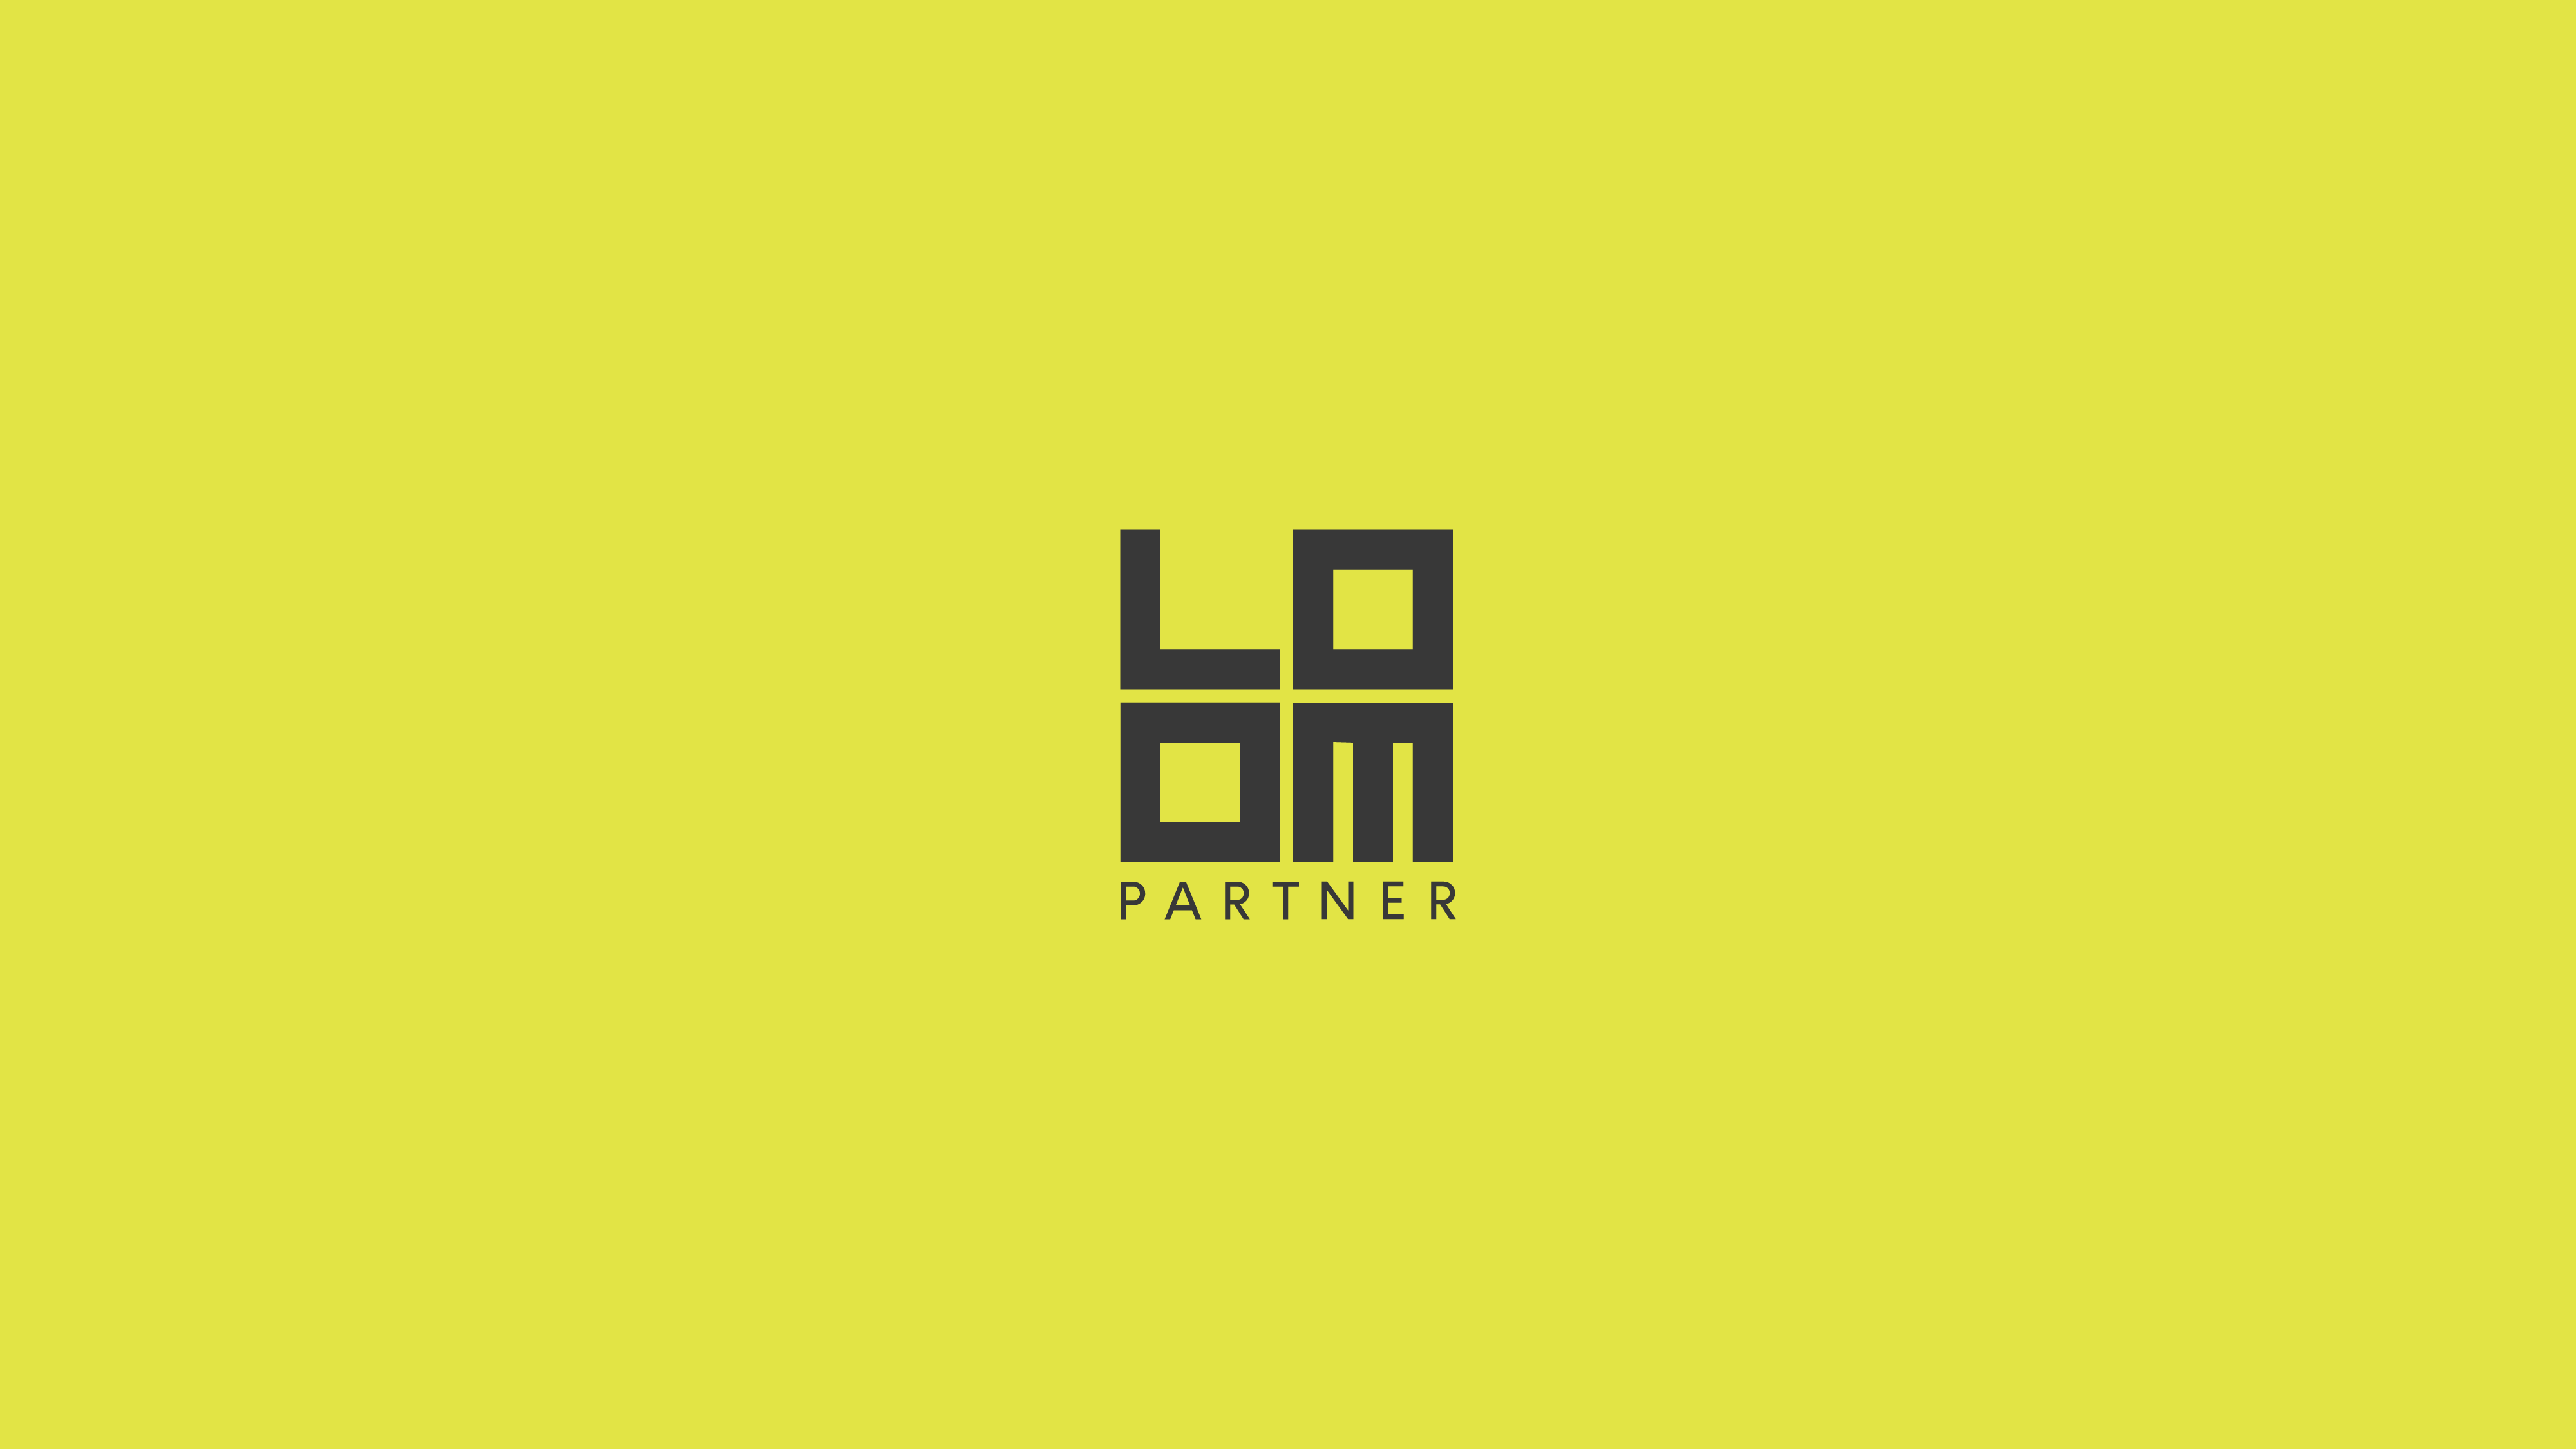 Guapo Design Studio Loom Partner media communication branding logotype